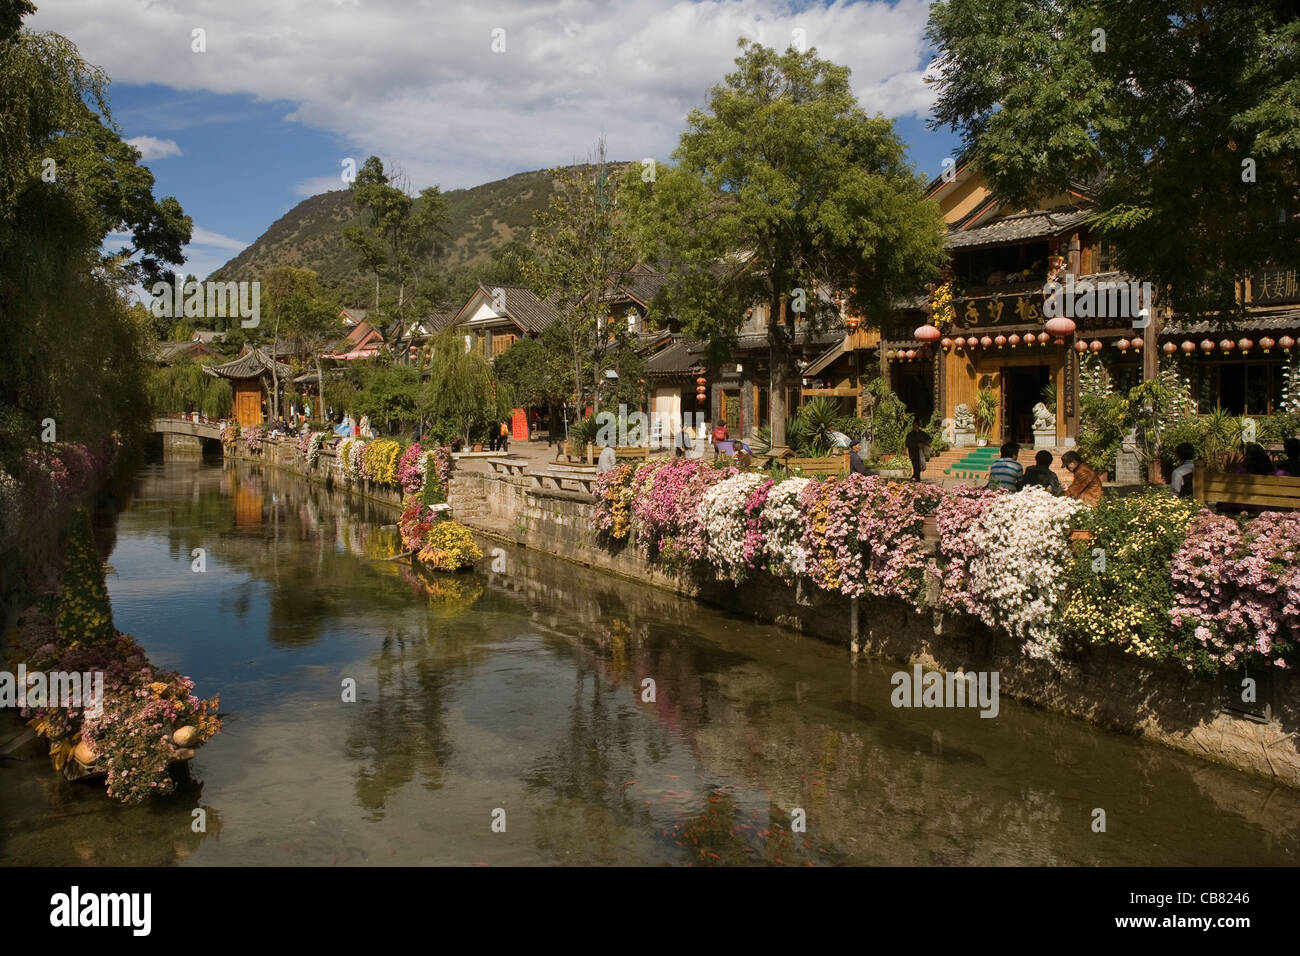 China Yunnan Lijiang, shops, river & flowers - Stock Image